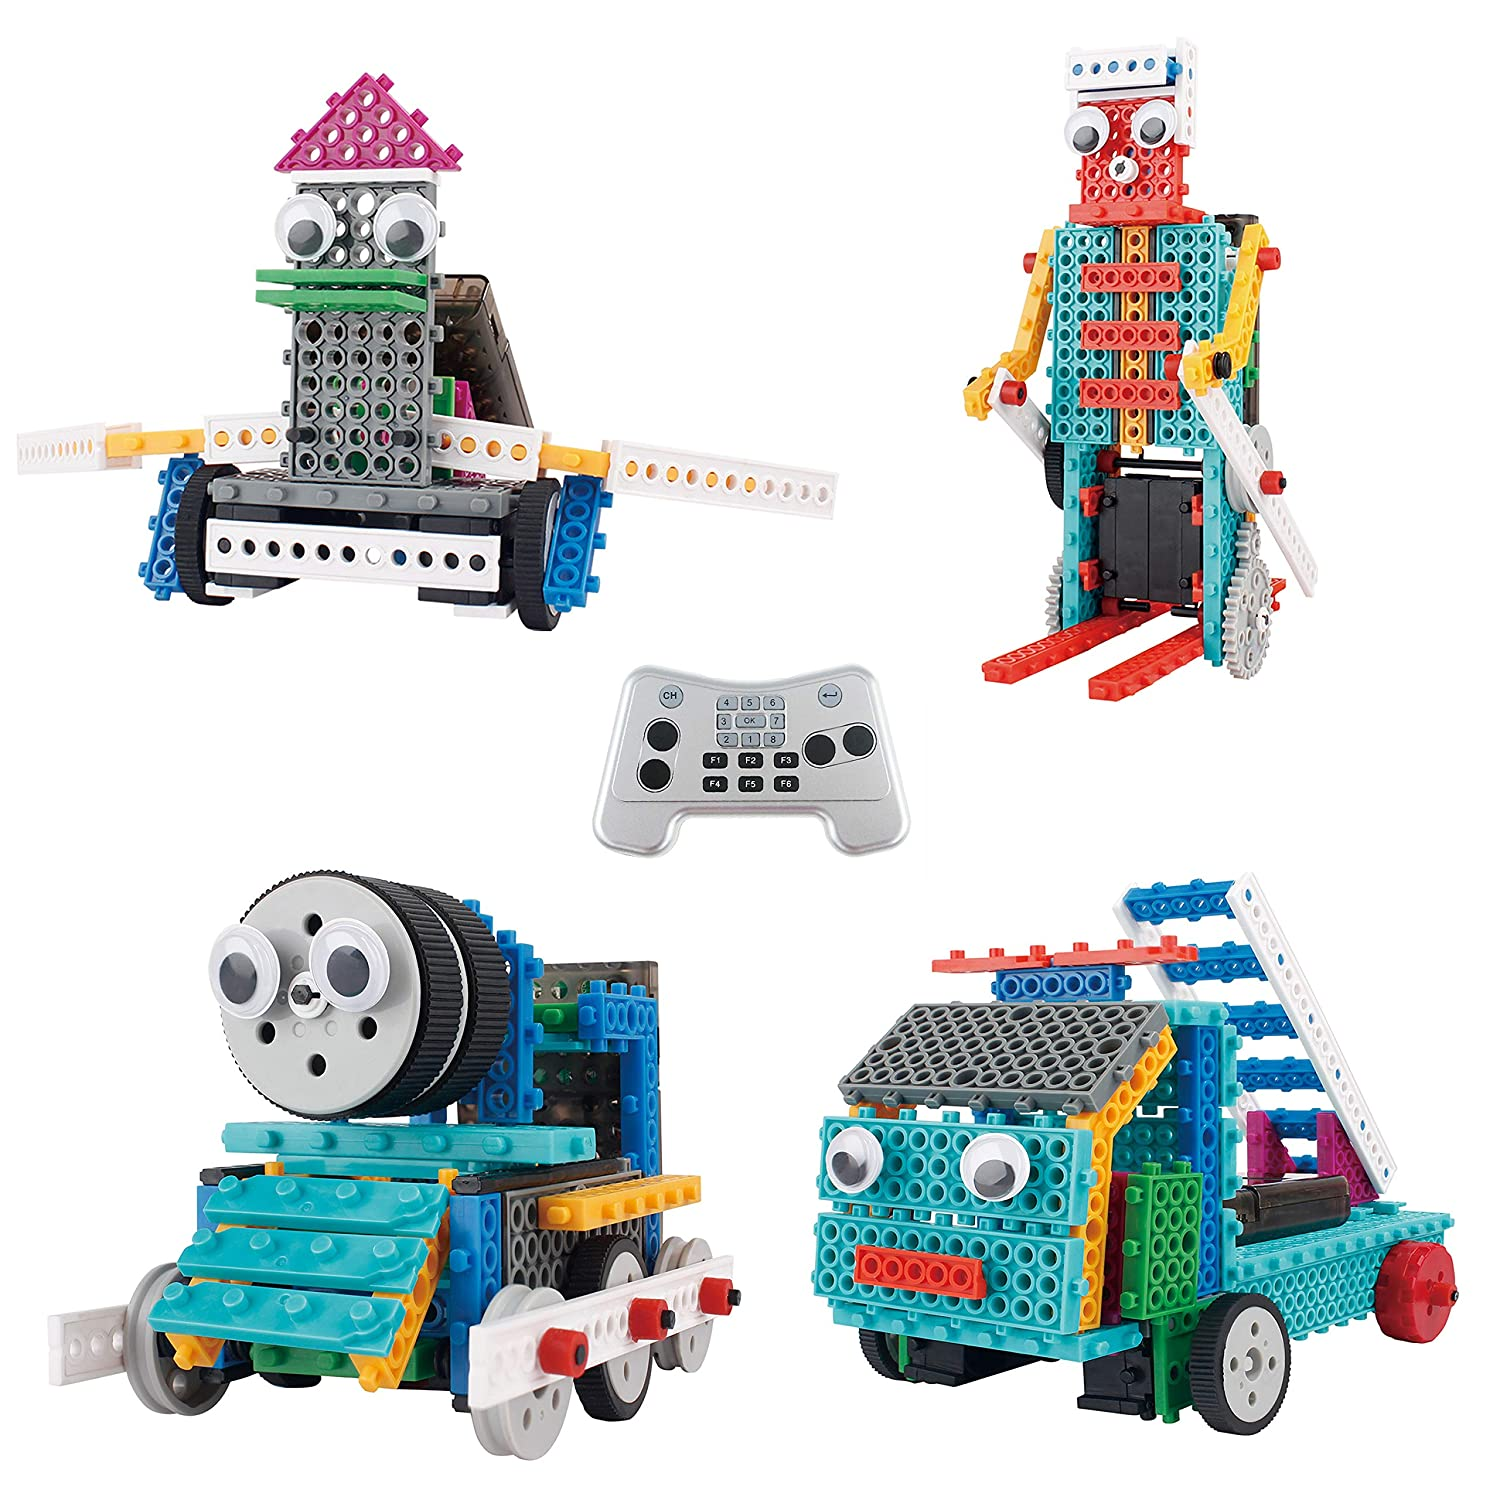 [Thinkgizmos]Thinkgizmos Robot Kit For Kids Ingenious Machines Build Your Own Remote Control Robot Toy Awesome Fun [並行輸入品]   B01ANWSYE8